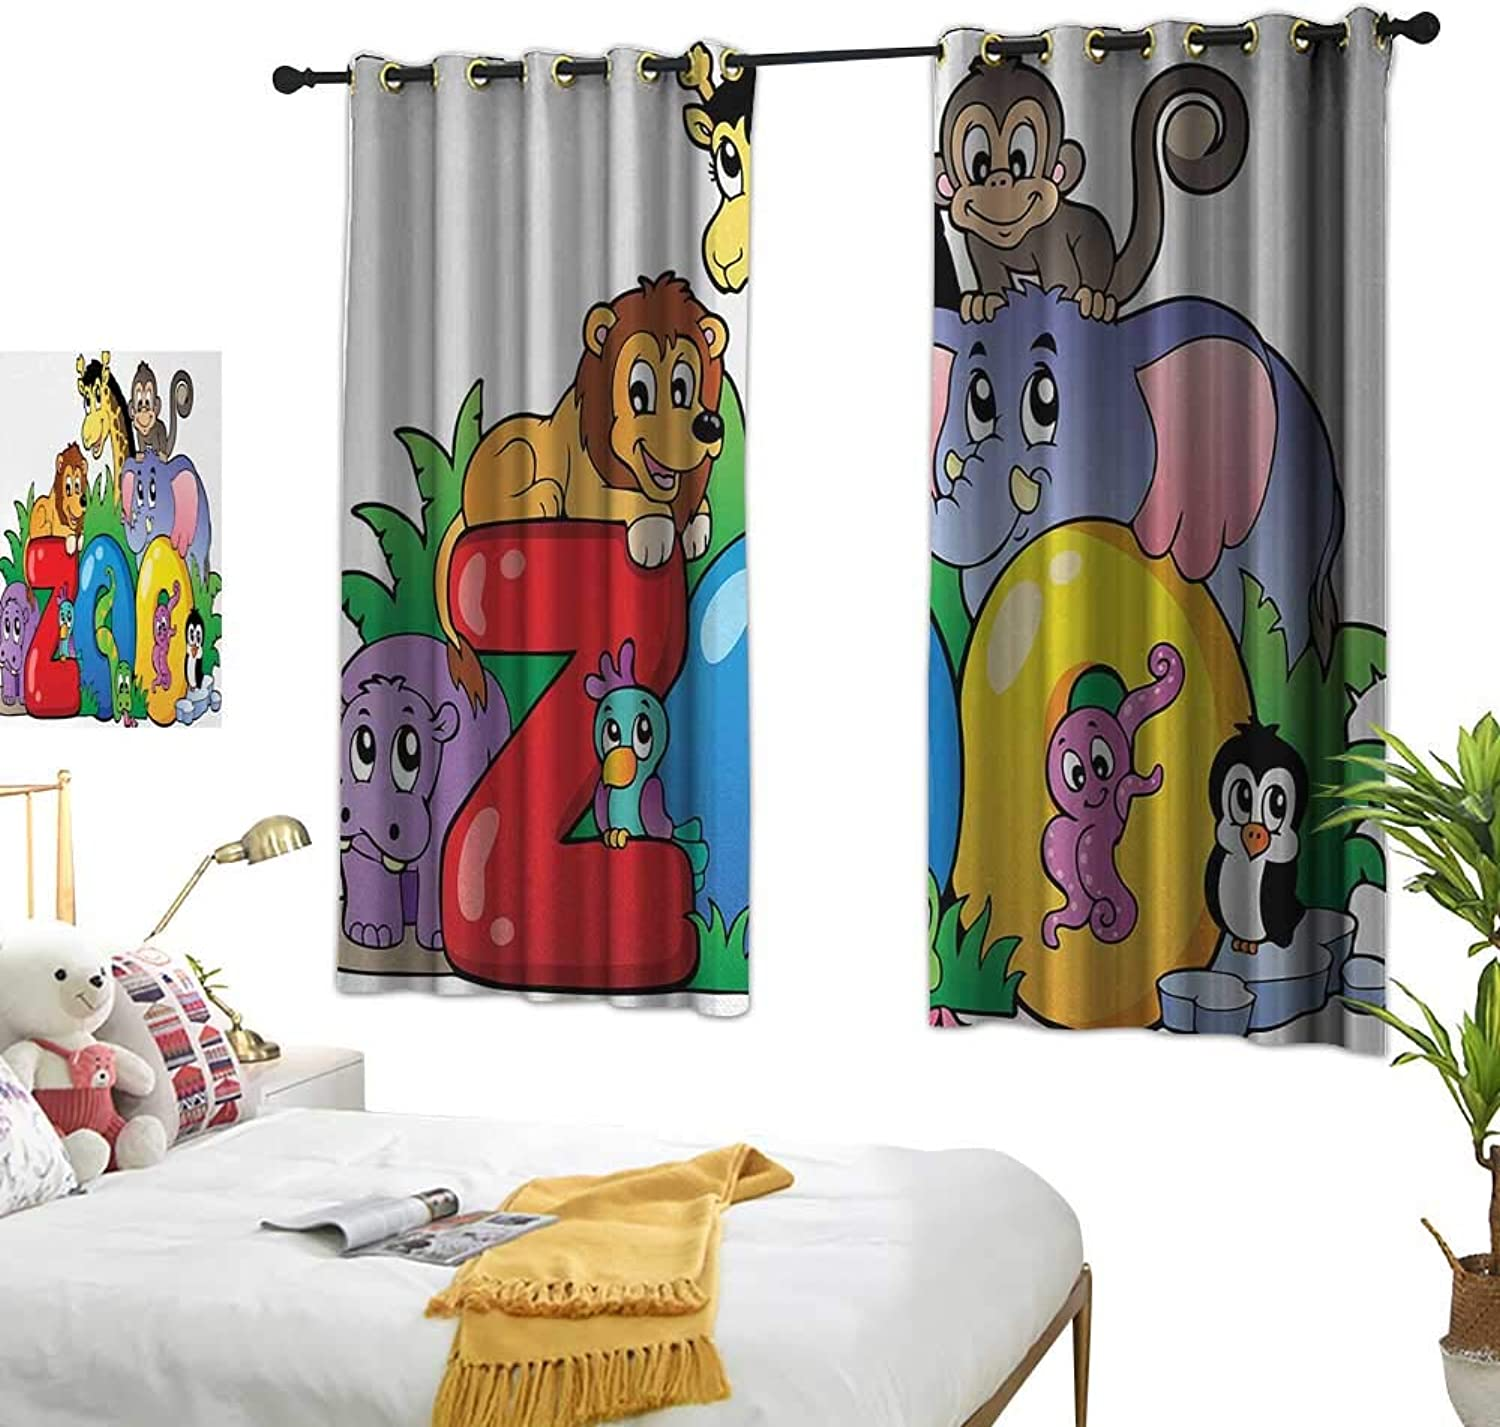 Drapes for Living Room Zoo Zoo Sign with Various Animals Mascot Cartoon Characters Cute Playful Kids Room Print W55 xL39 Multicolor Suitable for Bedroom Living Room Study,etc.